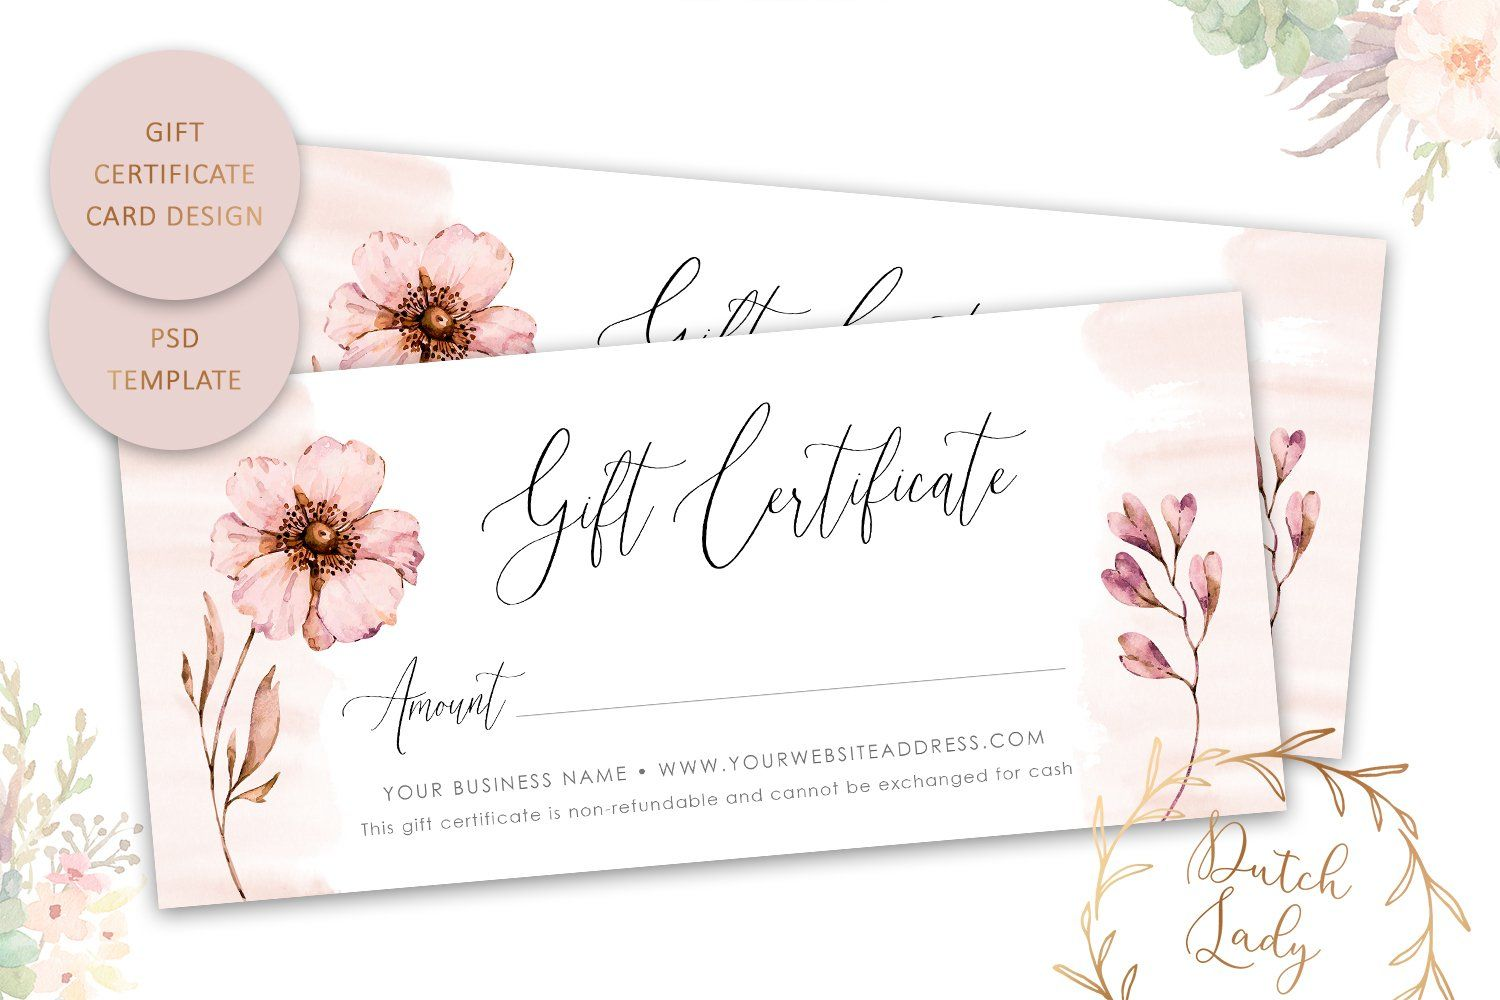 Gift Certificate Card Template Single Sided 1 758235 Card And Invites Design Bundles In 2021 Gift Certificate Template Gift Card Design Rack Card Templates